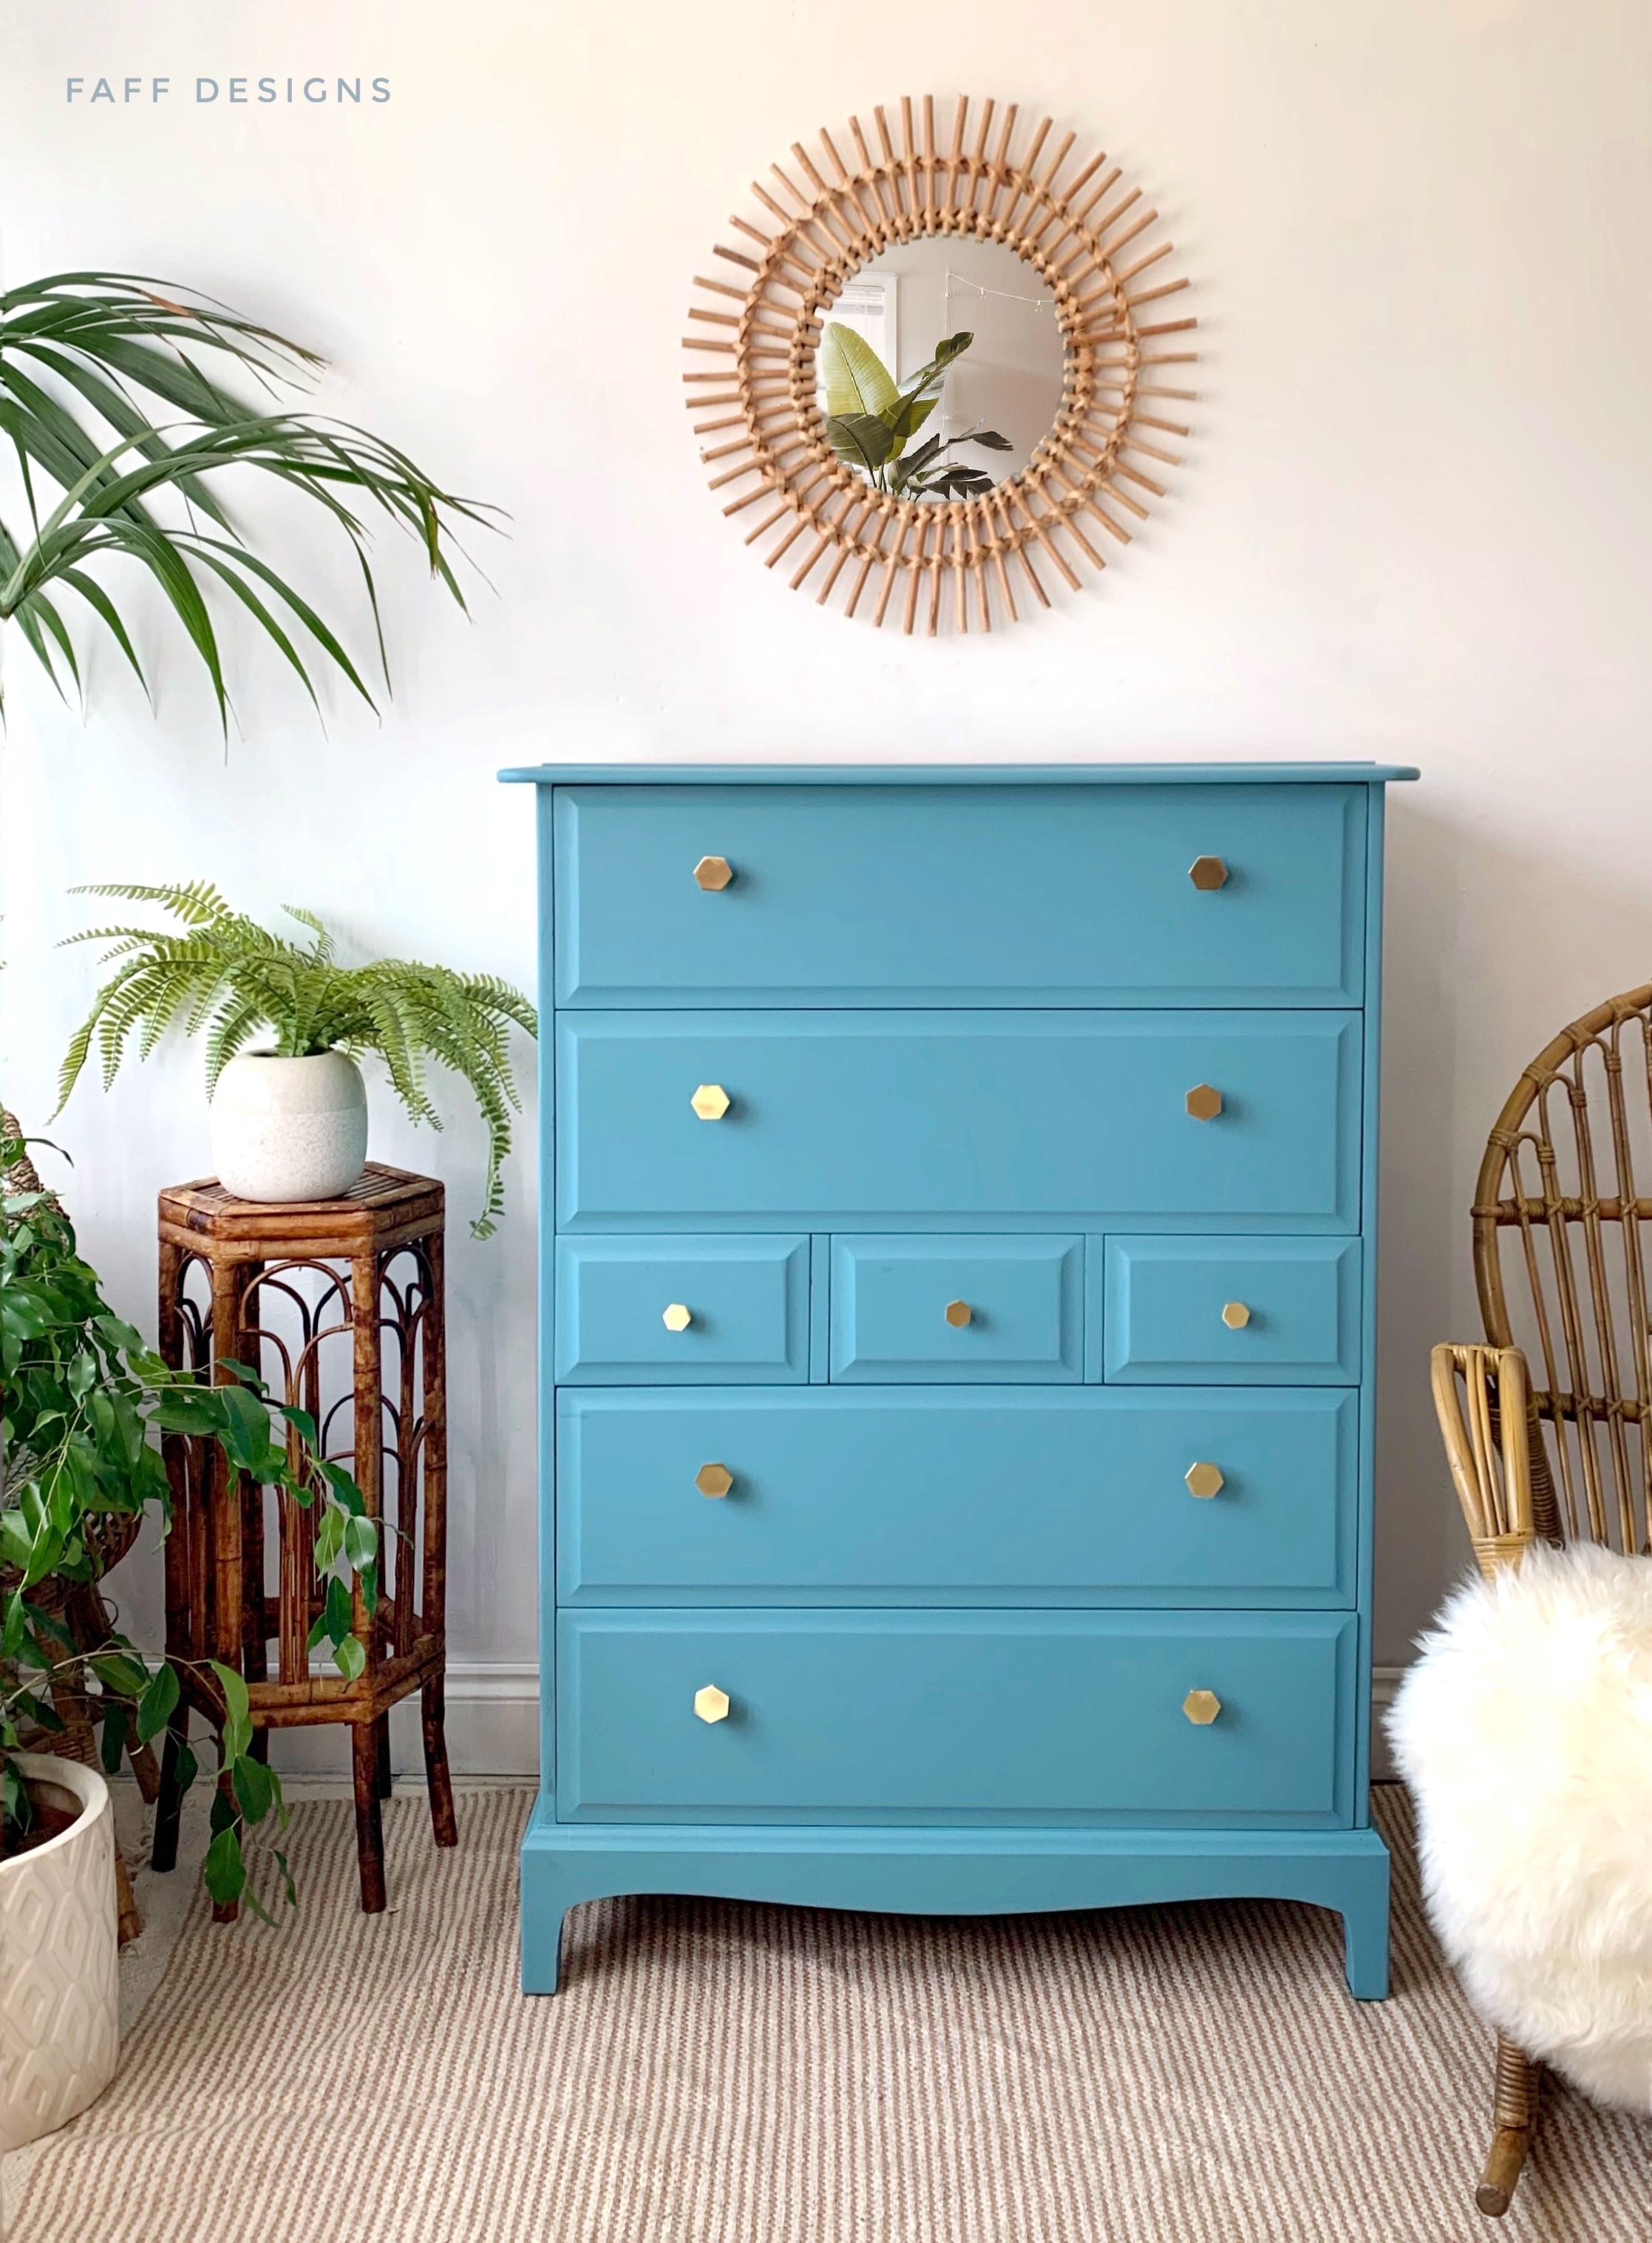 Stag Minstrel Tallboy Chest of Drawers Painted Blue